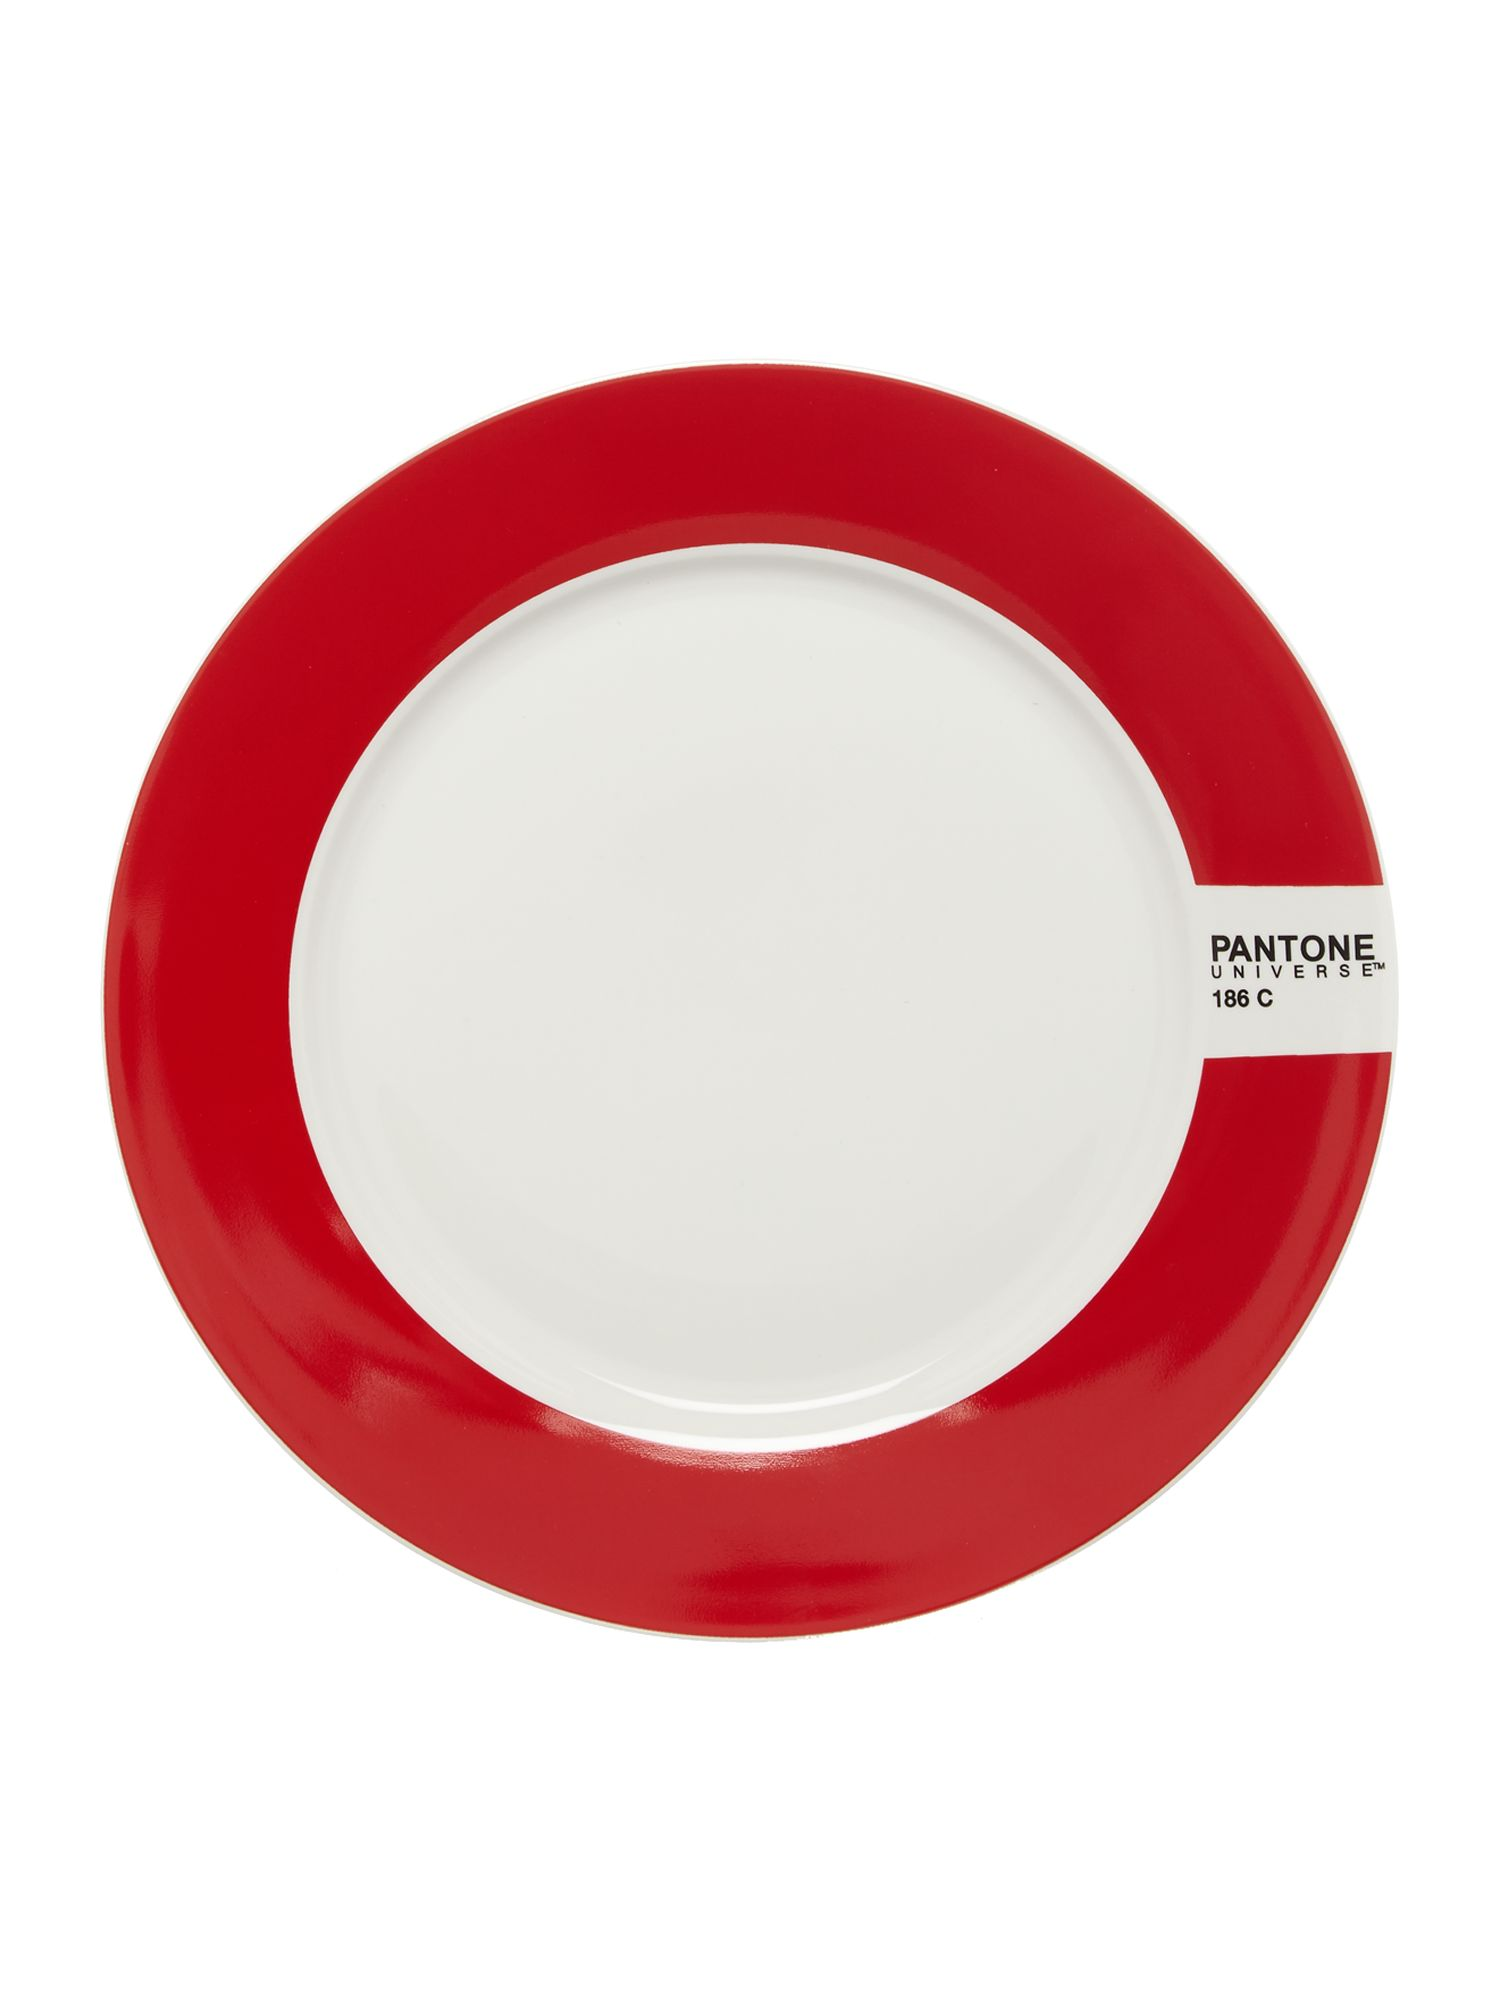 Image of Pantone Small plate luca trazzi red